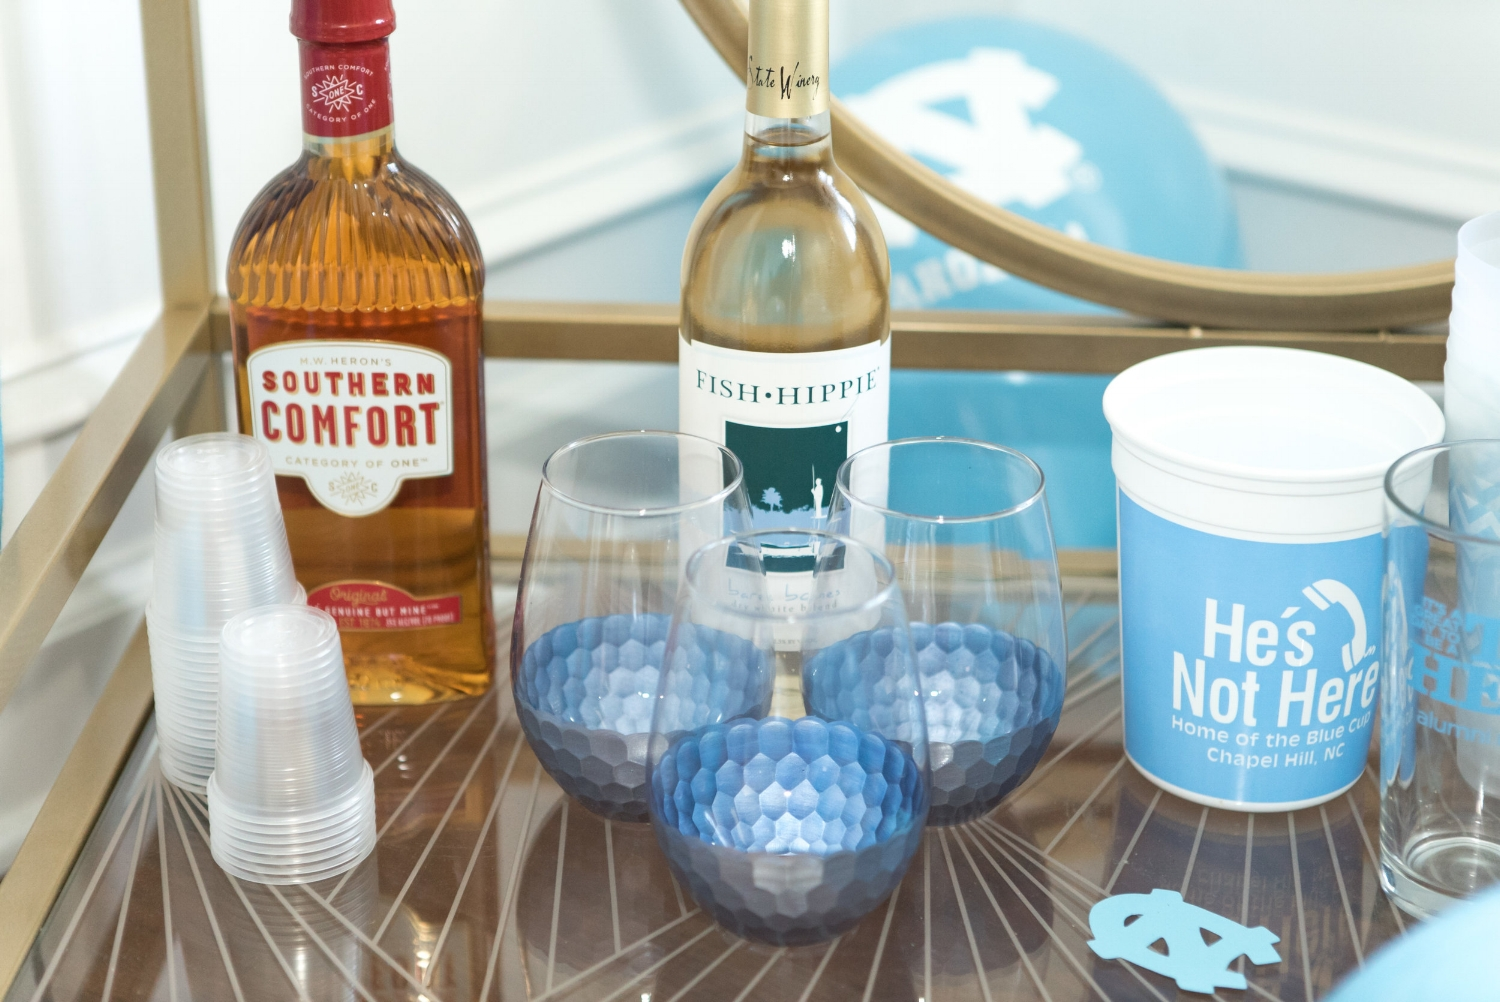 Southern Comfort and NC's Fish Hippie Wine for those that don't love beer. And of course, no UNC game day is complete without a blue cup from He's Not Here!